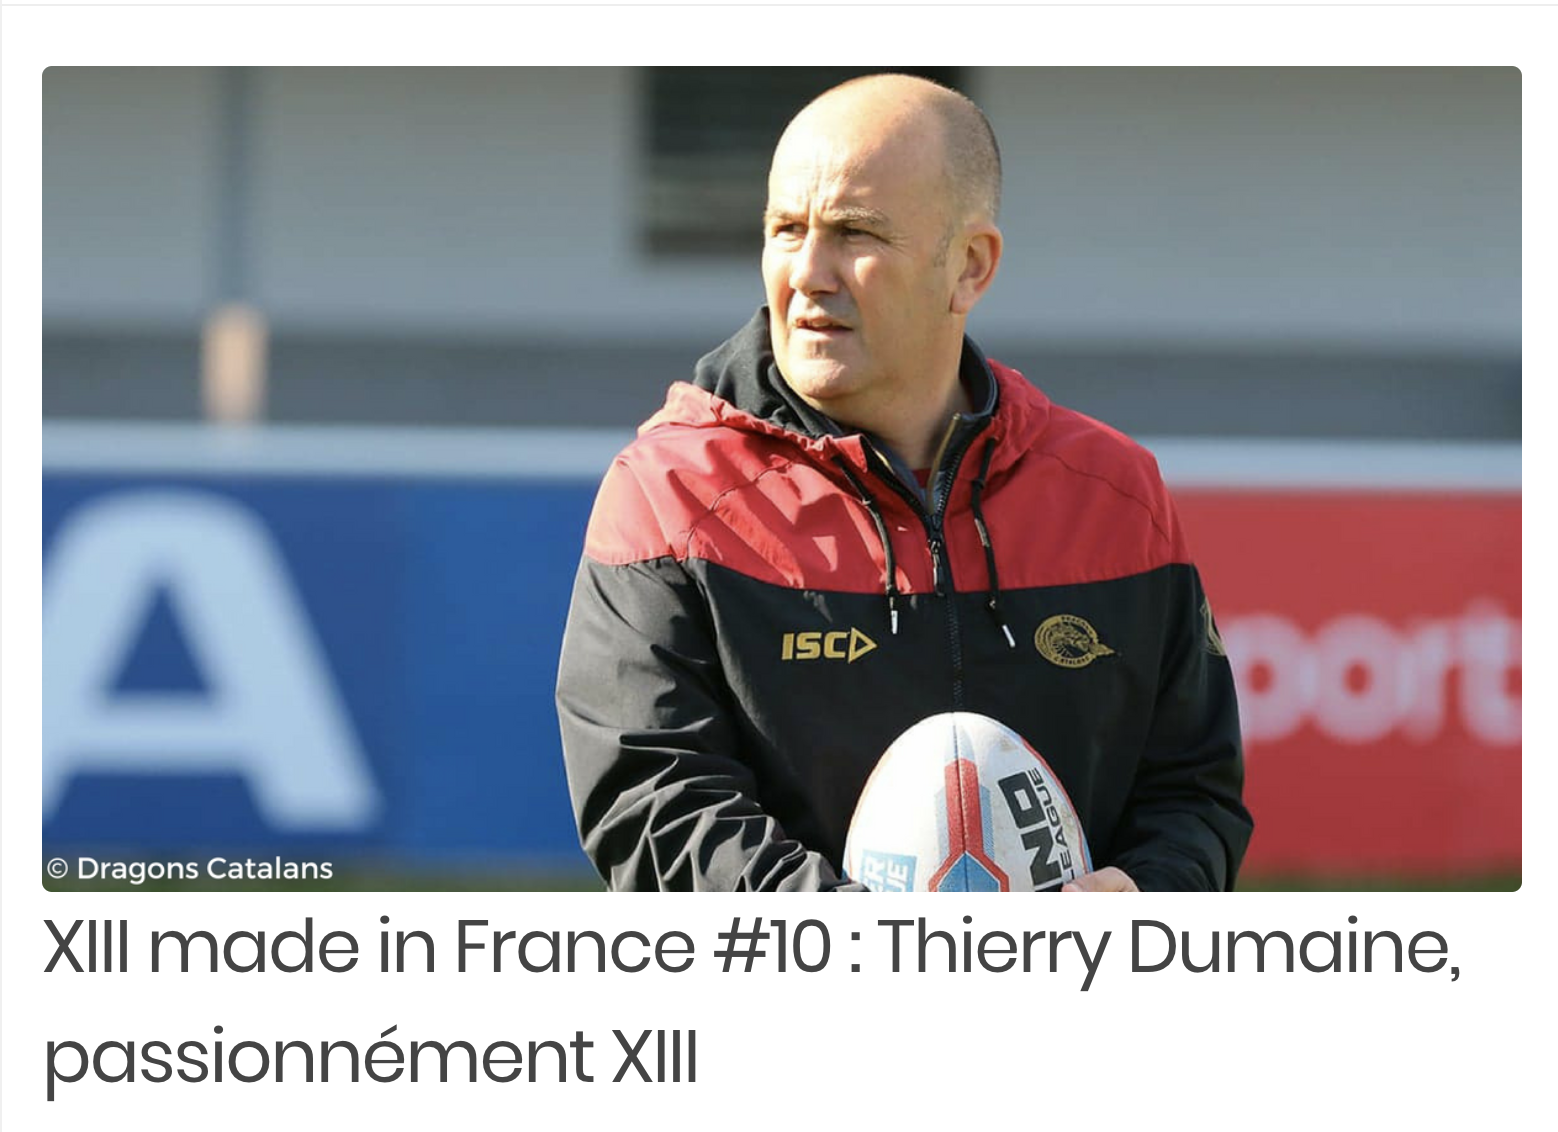 Thierry Dumaine